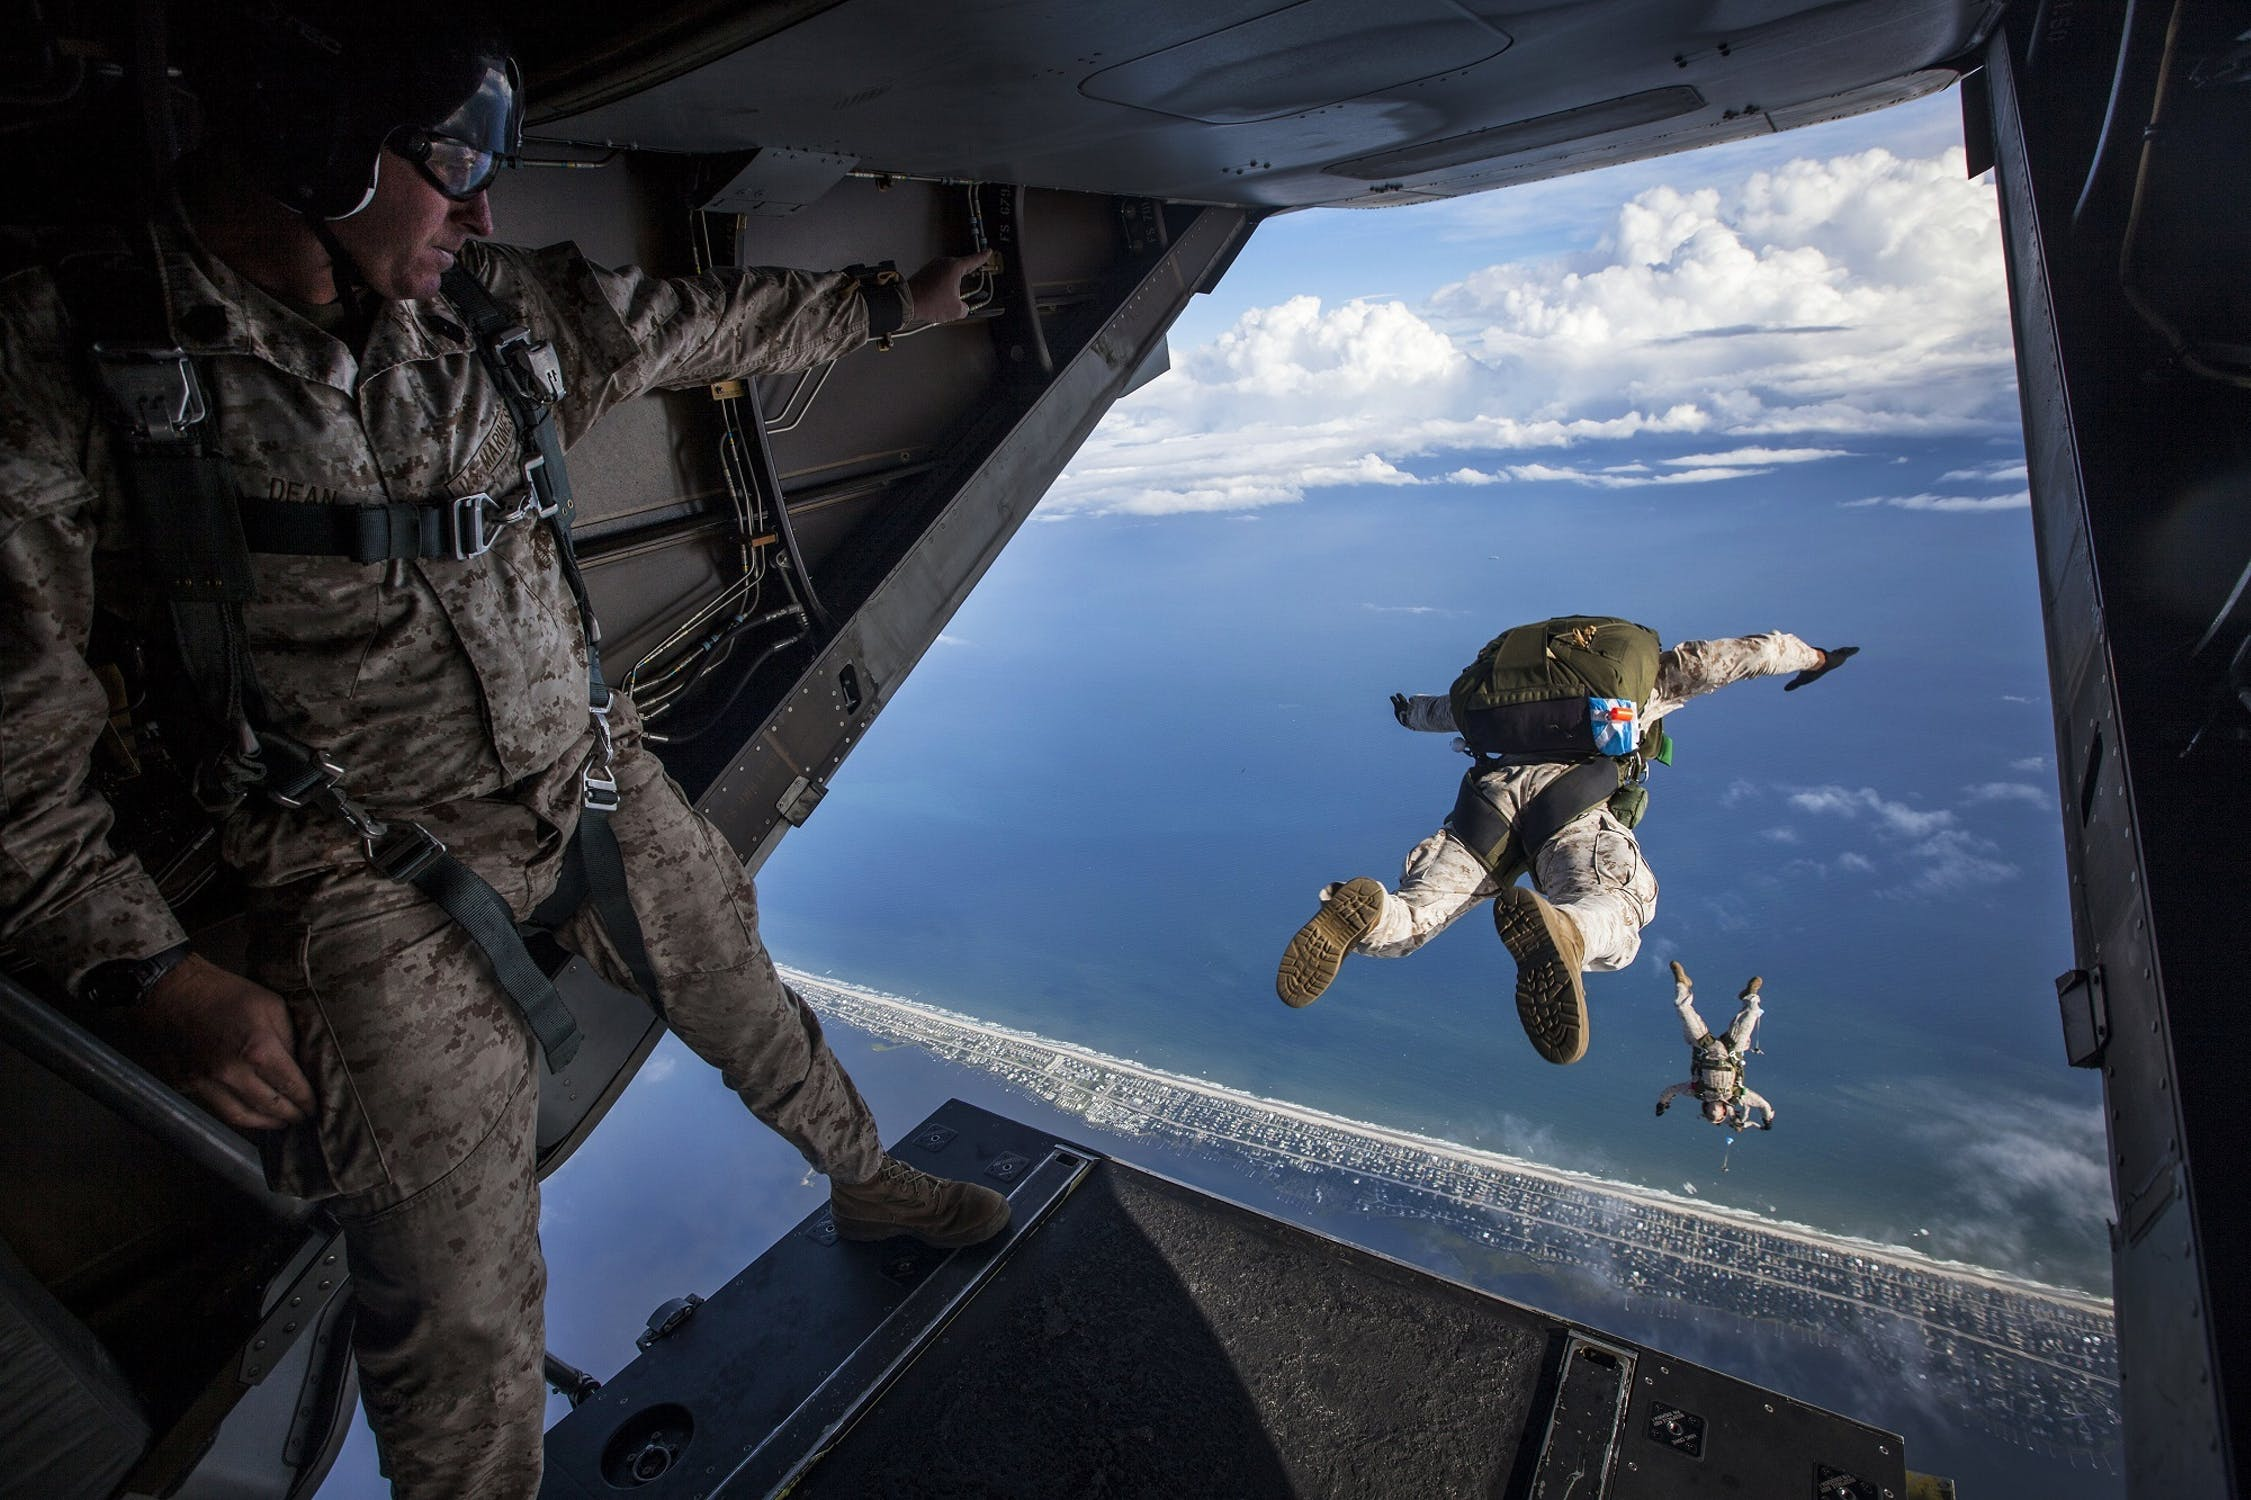 Special forces skydiving